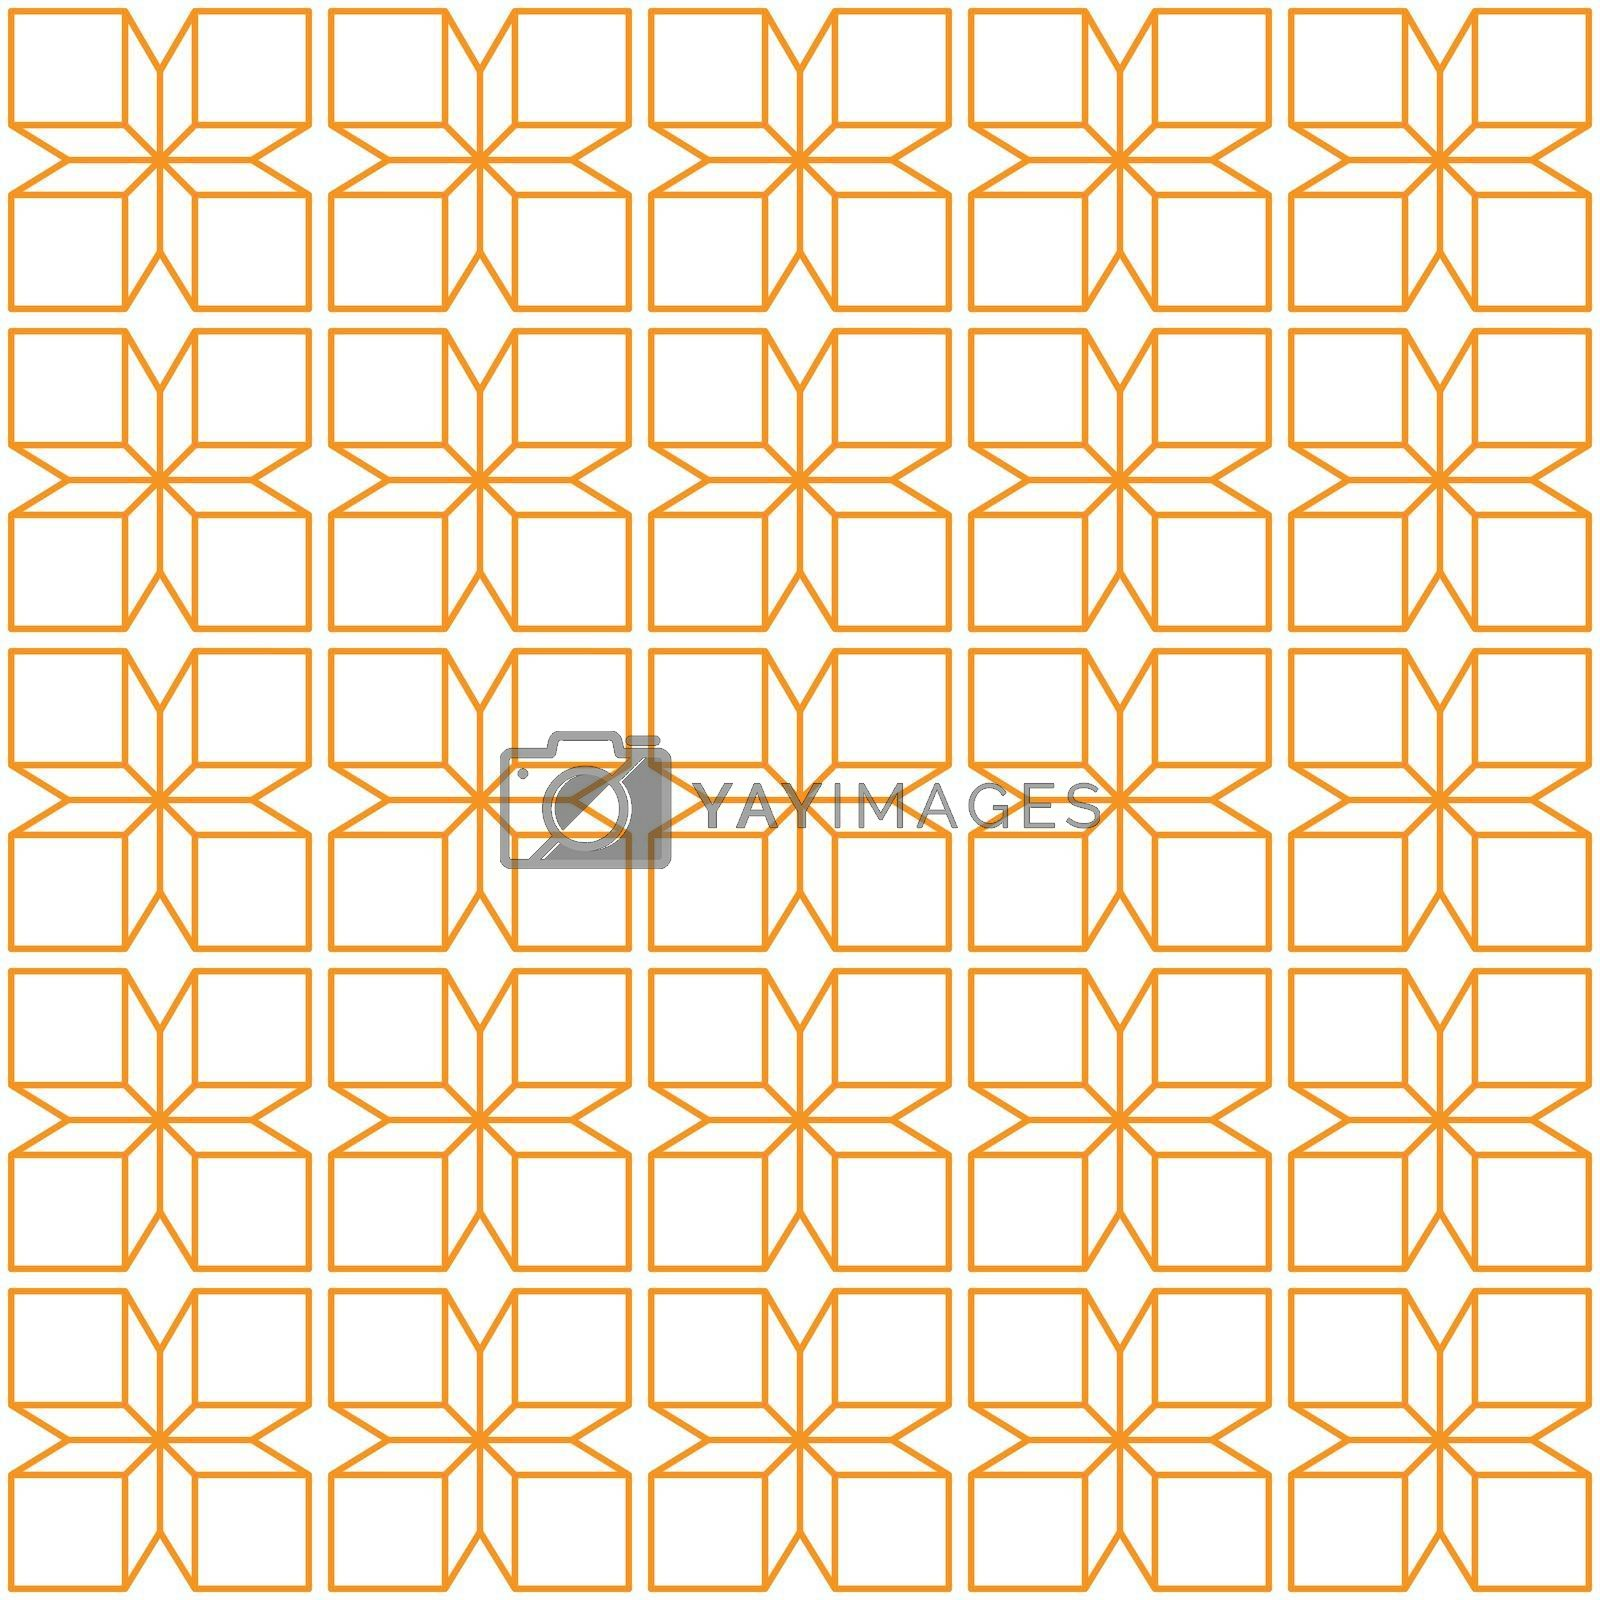 Seamless geometric pattern of squares and diamonds for texture, textiles, prints, and simple backgrounds, flat style